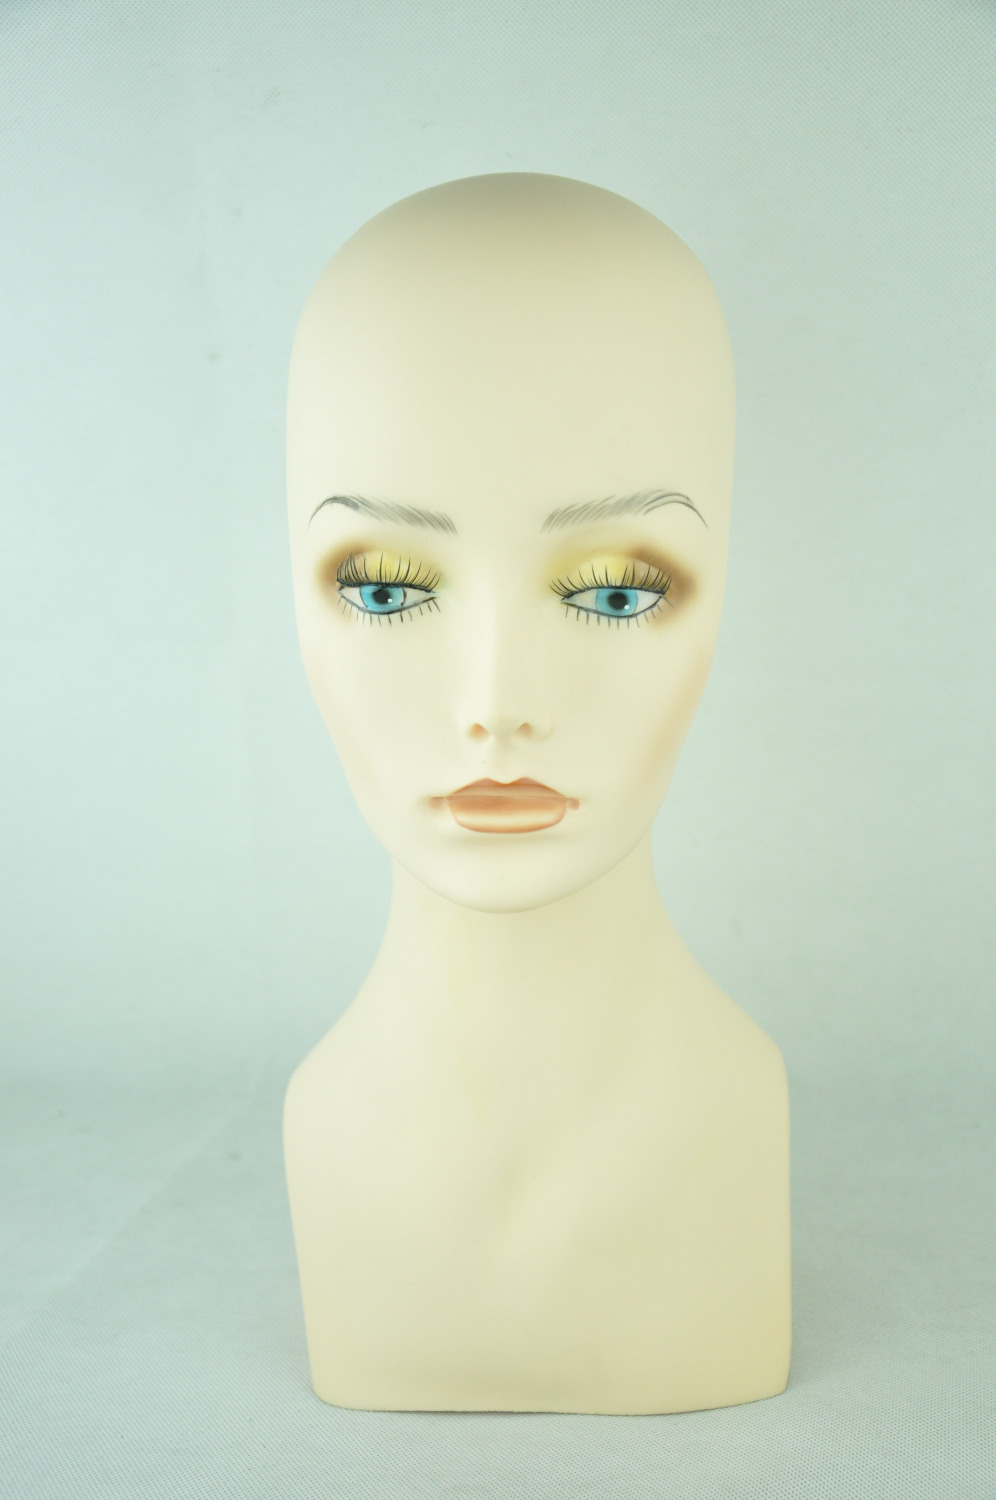 6PC 15 Tall PVC plastic rubber mannequin manikin head for necklace cap wig display PJH